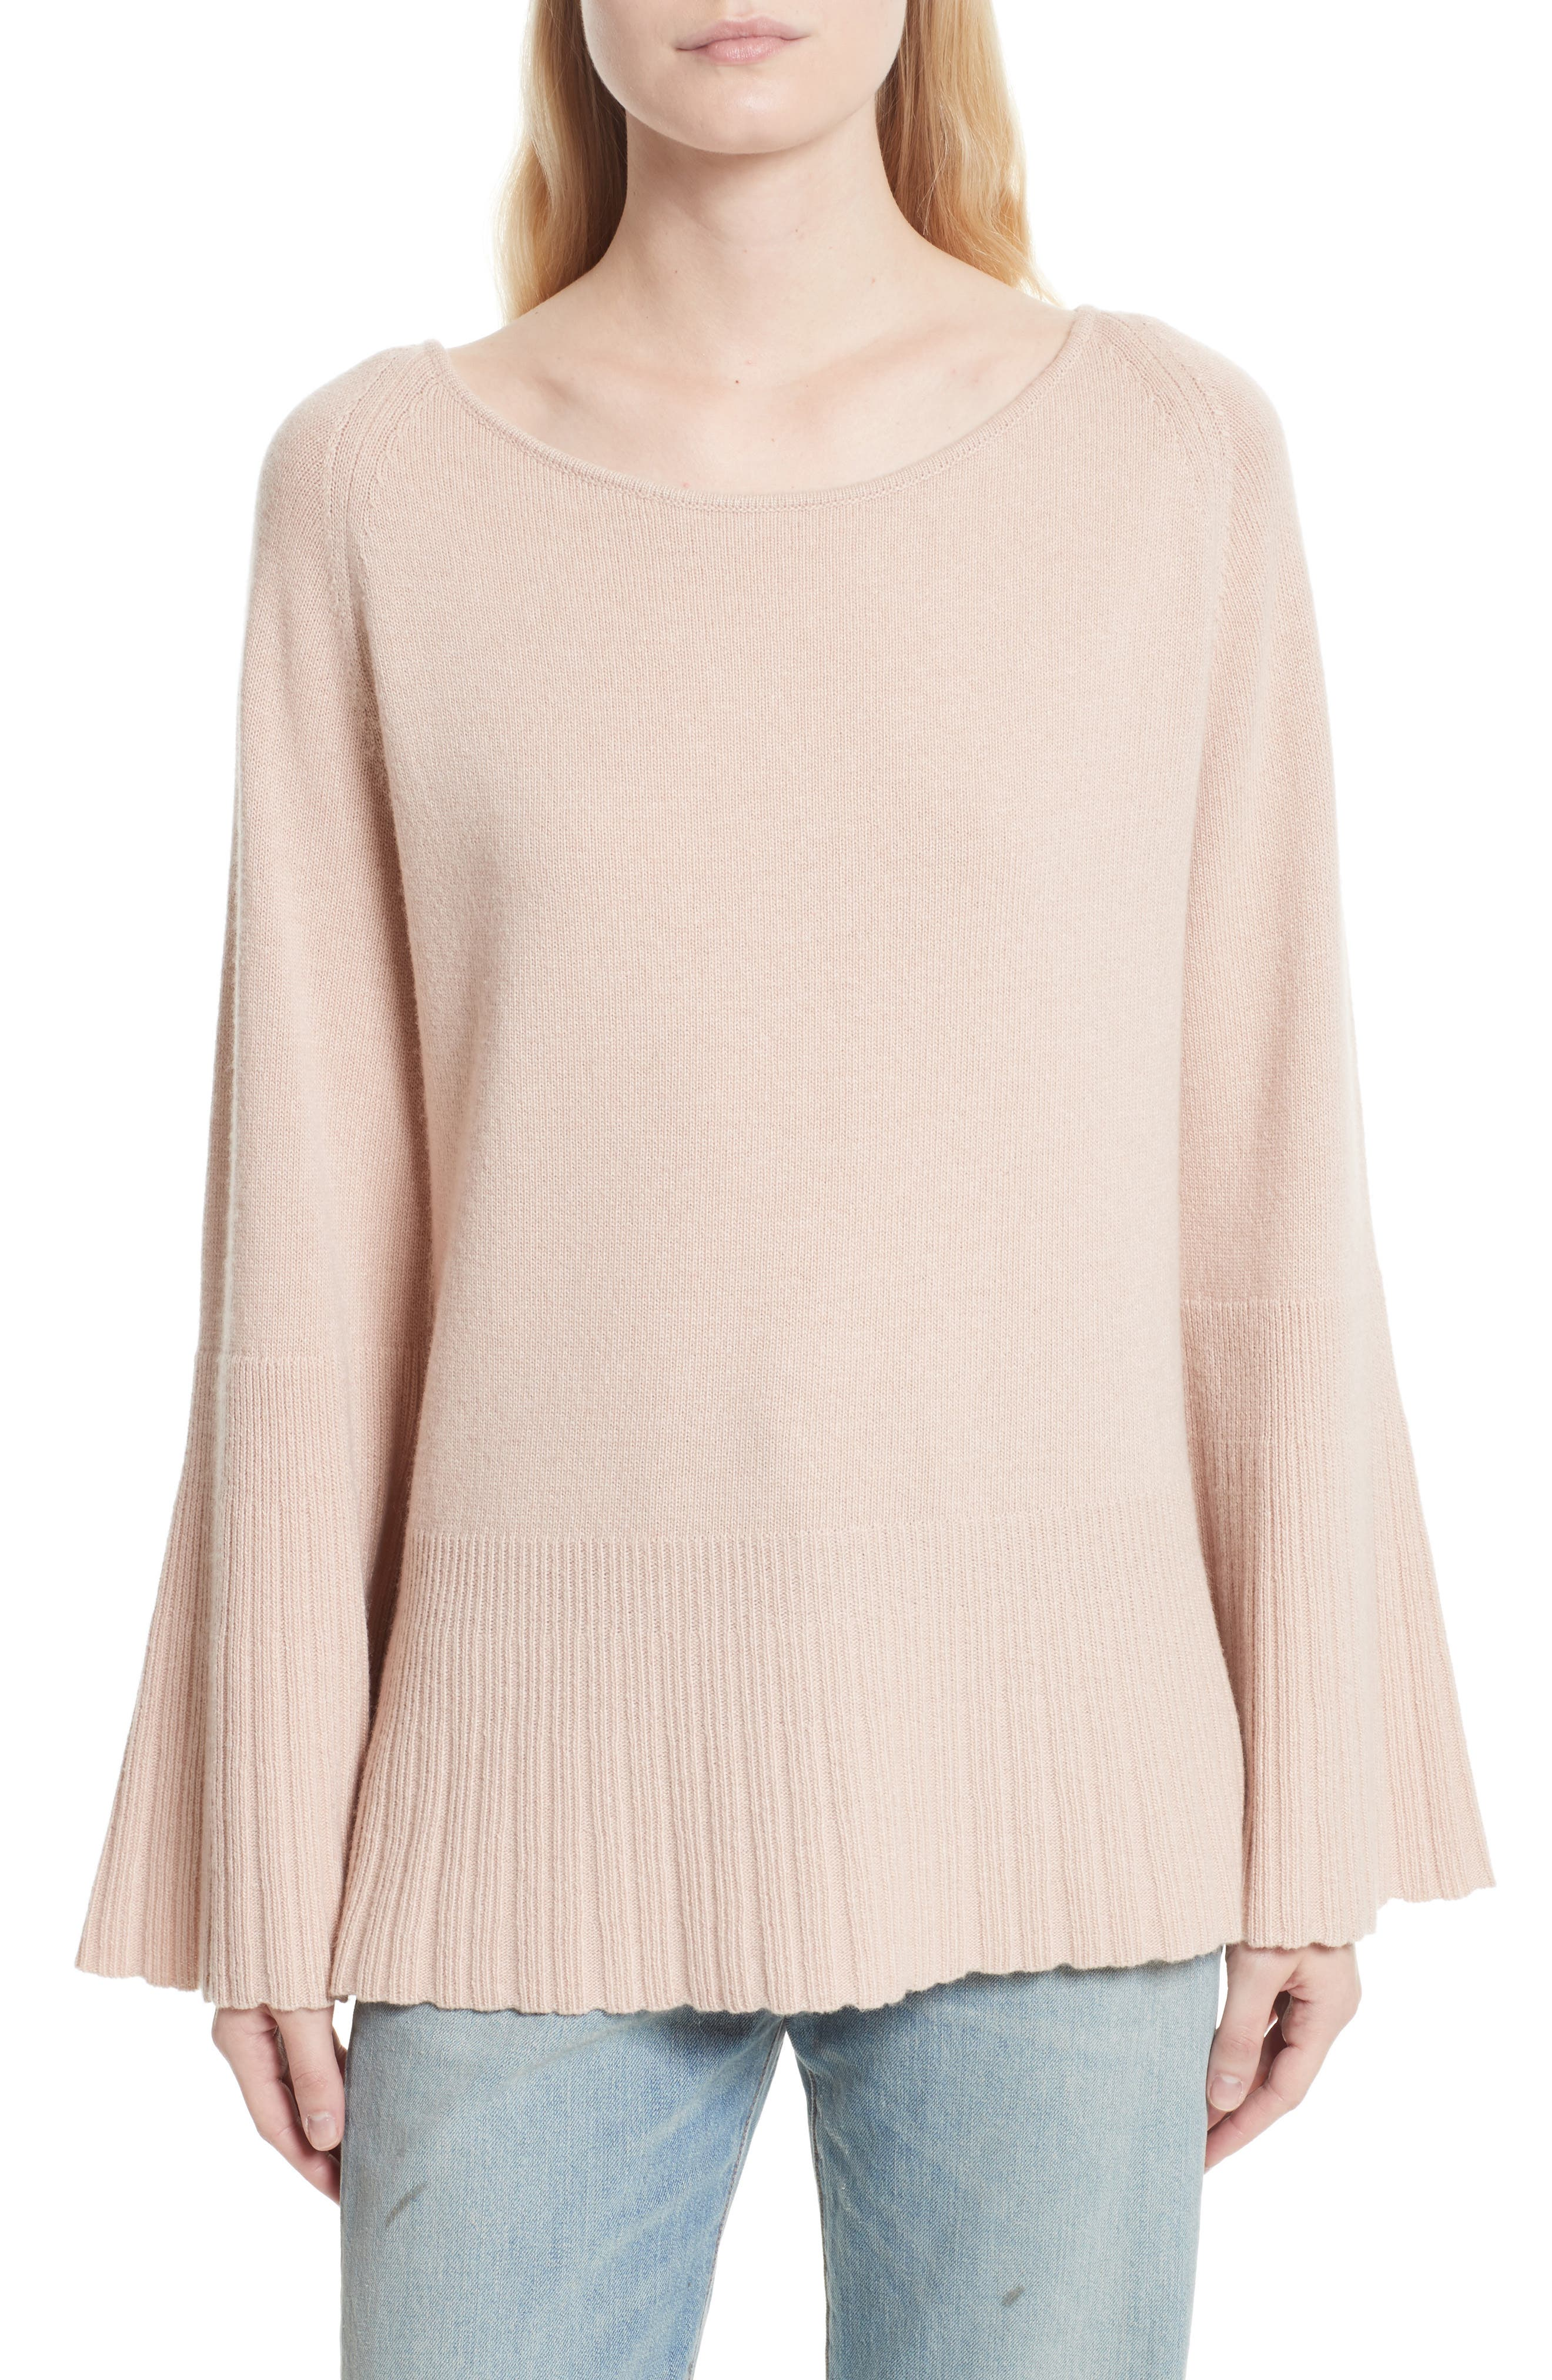 Main Image - Elizabeth and James Clarette Bell Sleeve Sweater